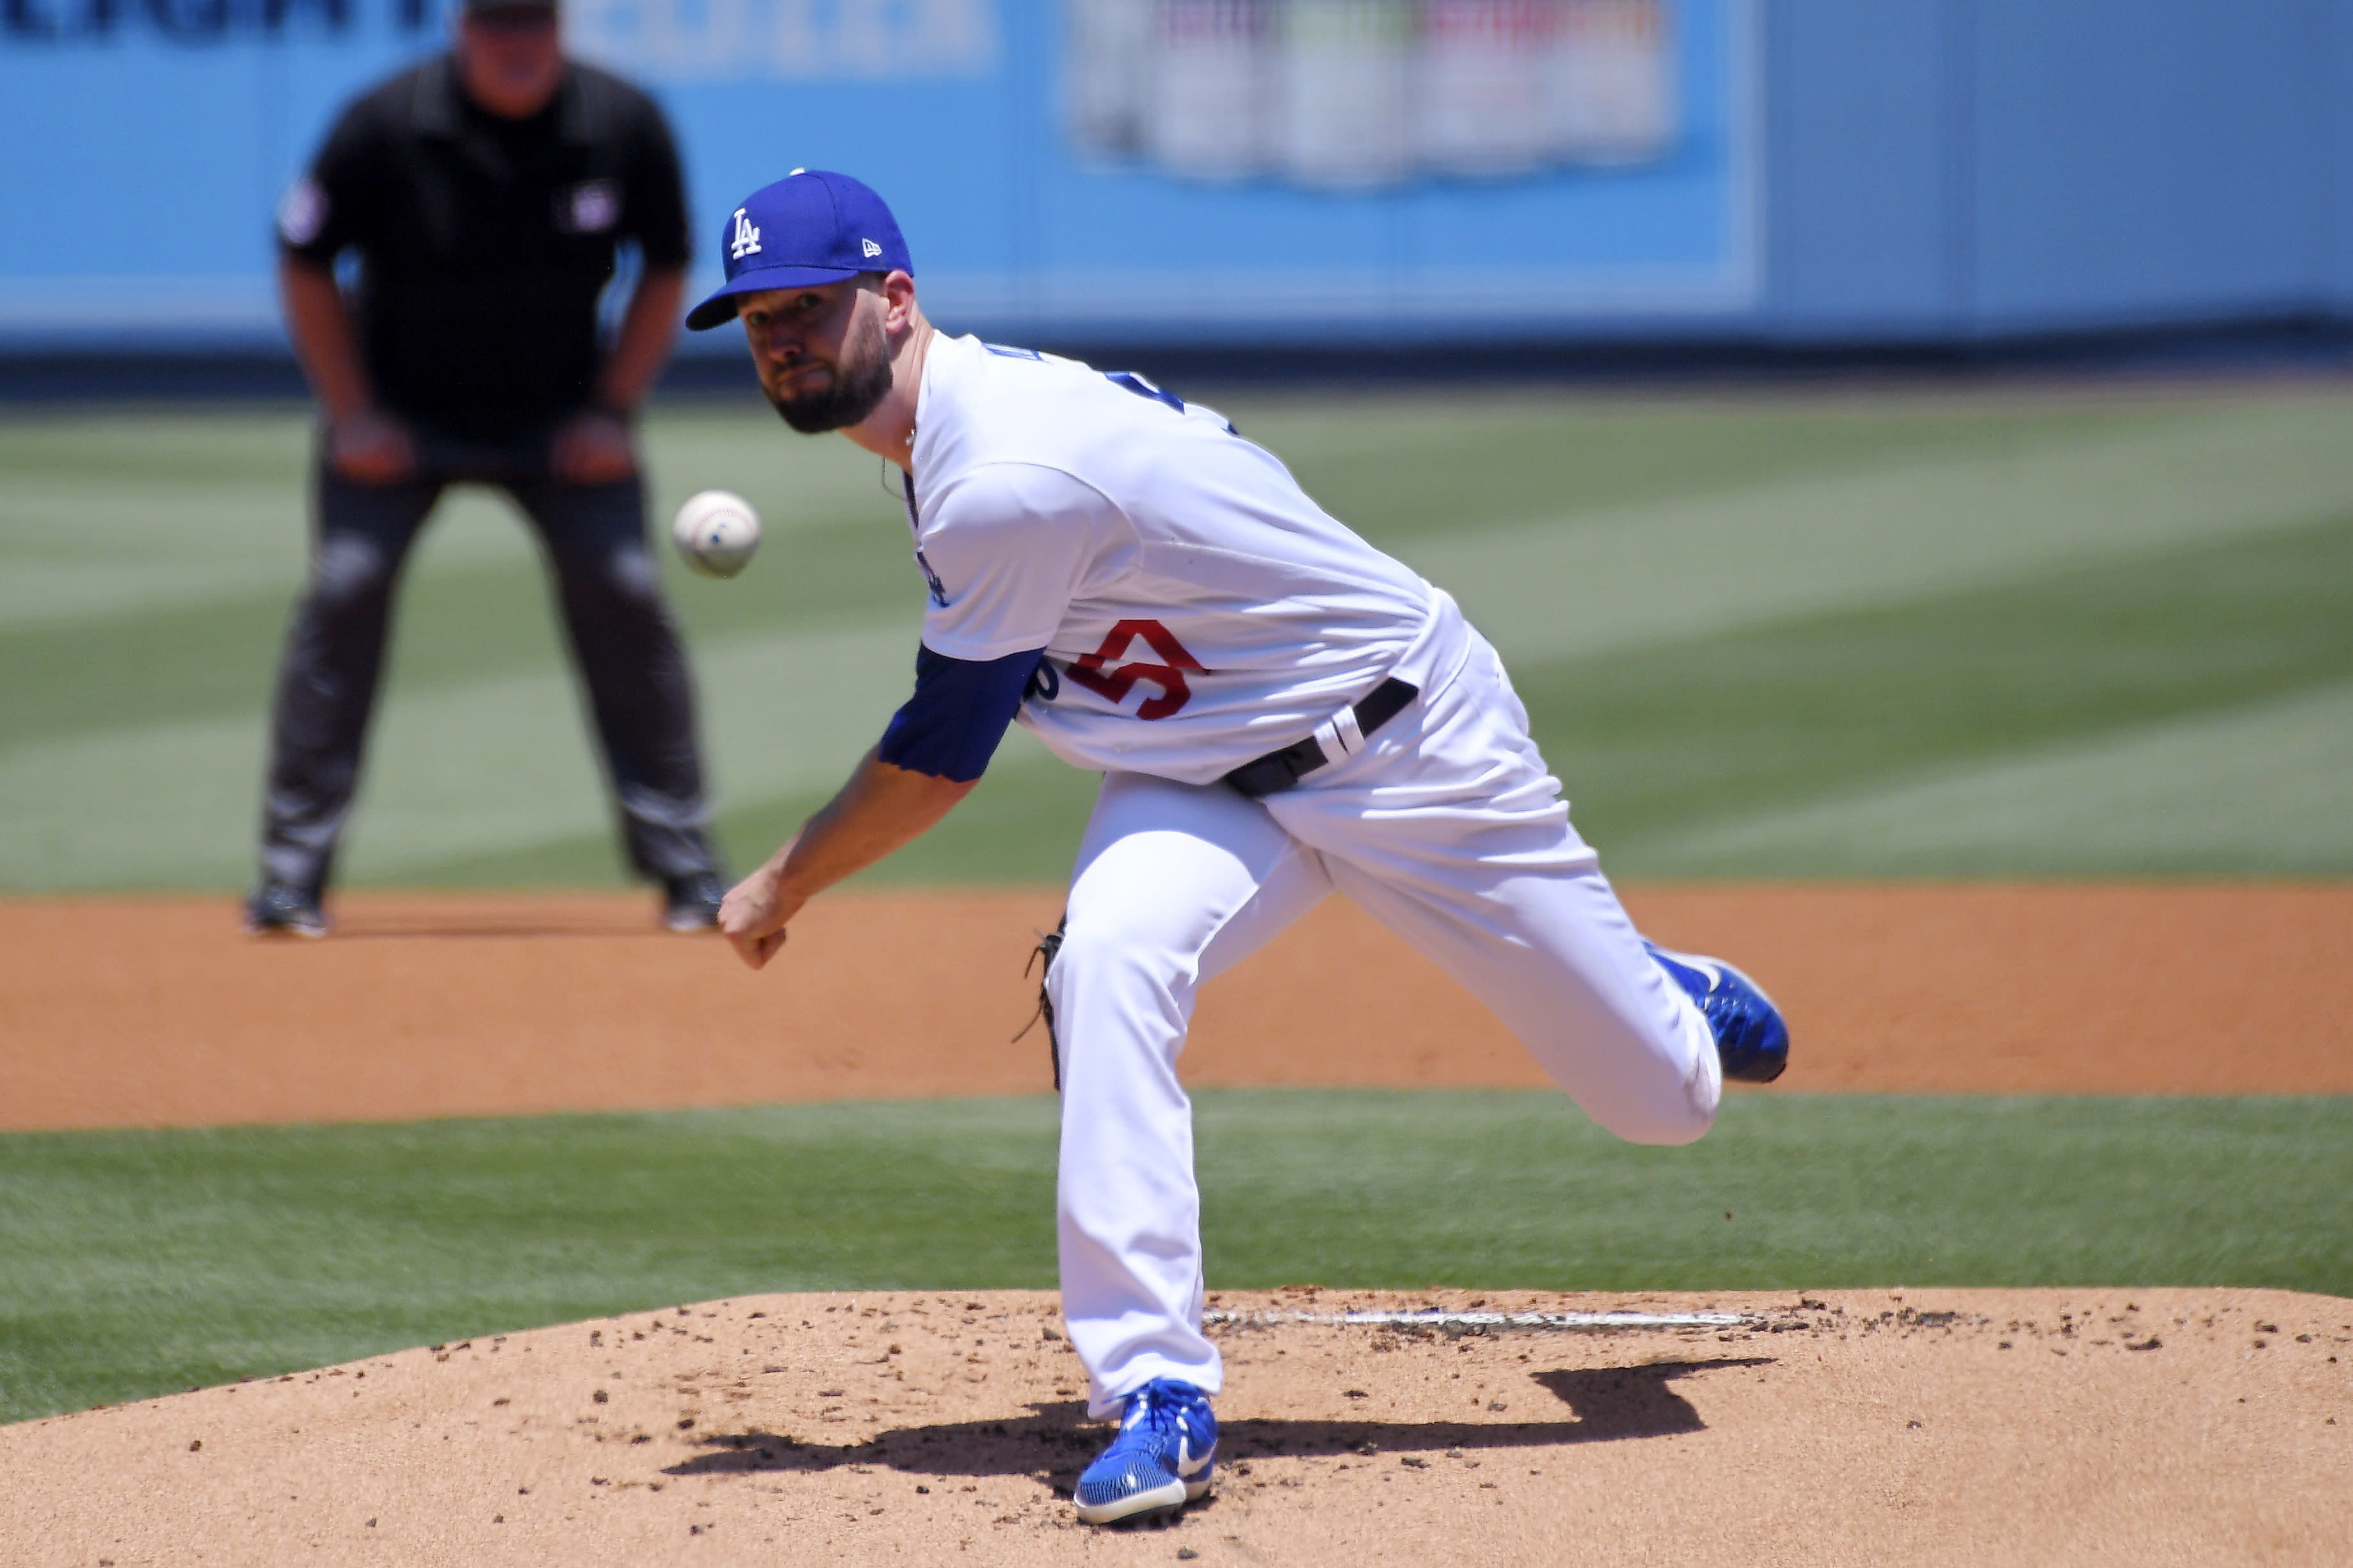 Los Angeles Dodgers starting pitcher Alex Wood throws to the plate during the first inning of a baseball game against the San Francisco Giants Saturday, July 25, 2020, in Los Angeles. (AP Photo/Mark J. Terrill)